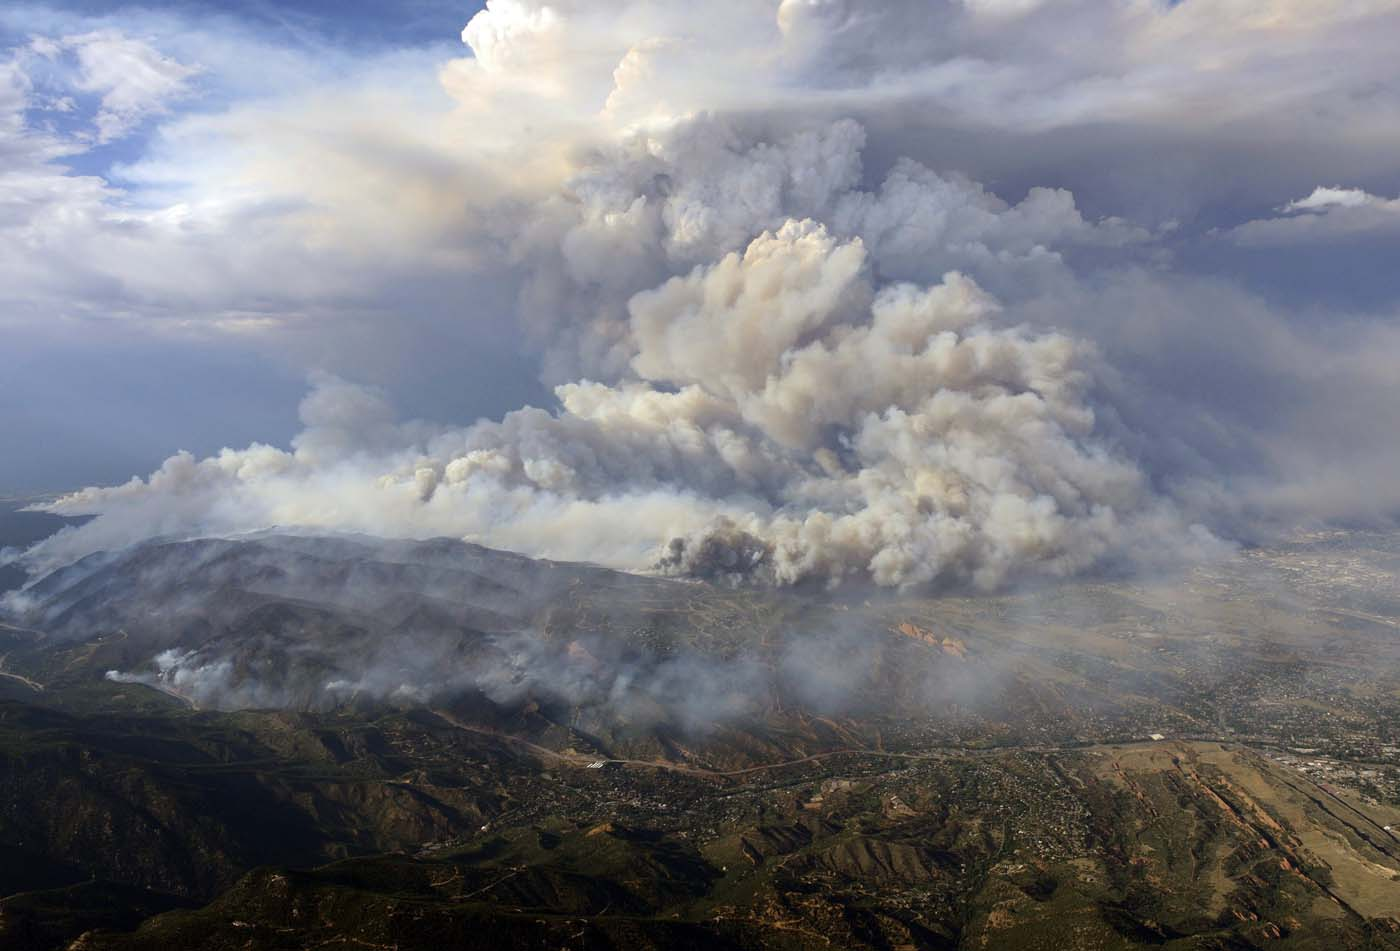 JUNE 26: Plume of smoke rises from Waldo canyon wildfire in this aerial photograph taken in Colorado Springs, Colorado on June 26, 2012. (John Wark/Reuters)